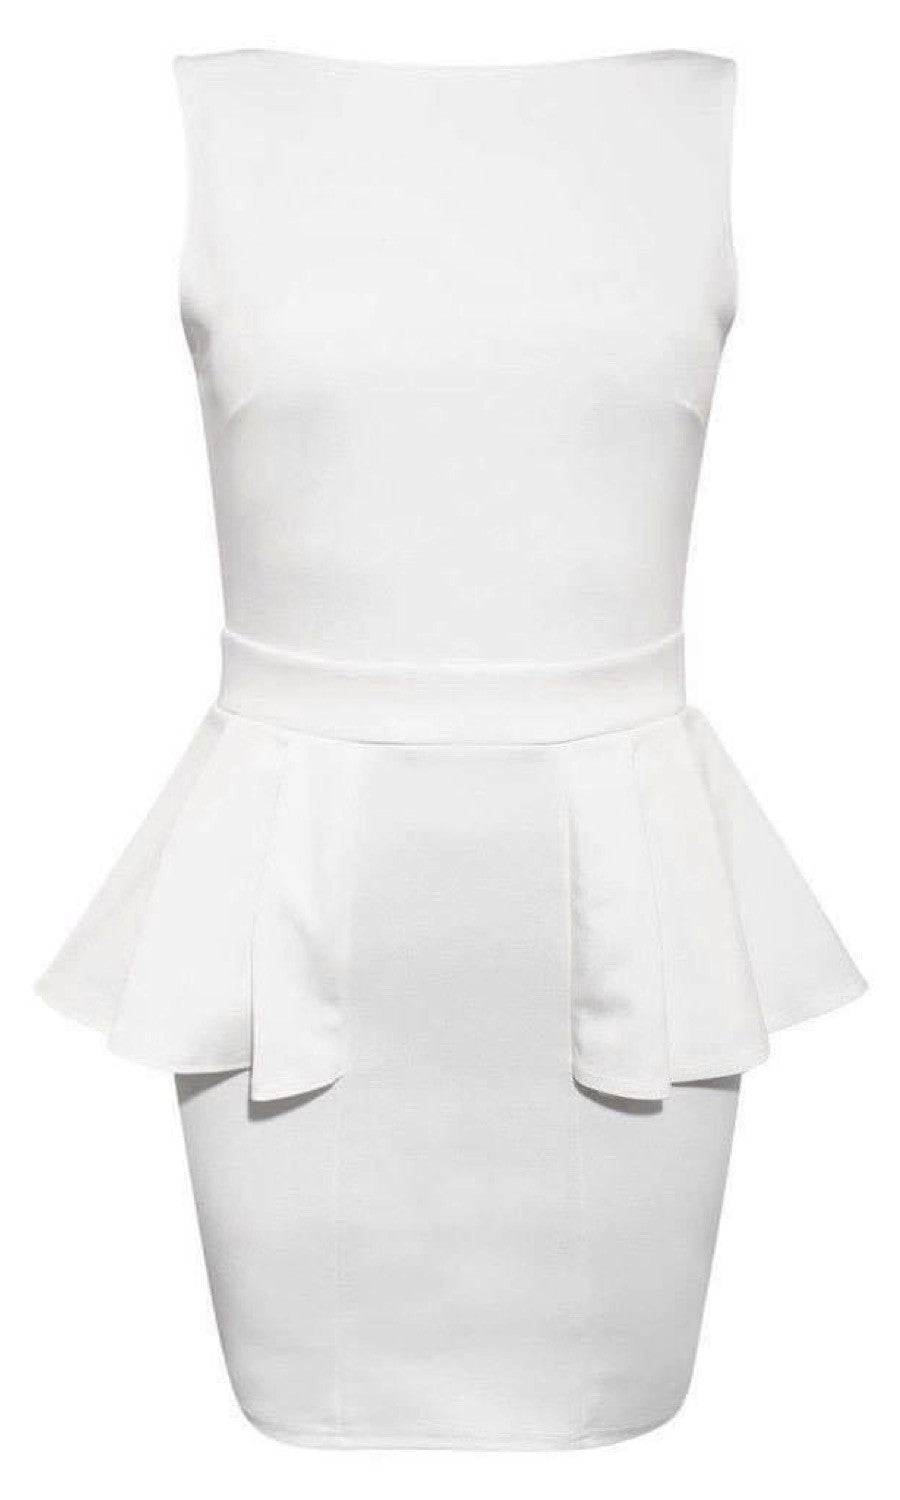 Low Back Peplum Dress in White FRONT